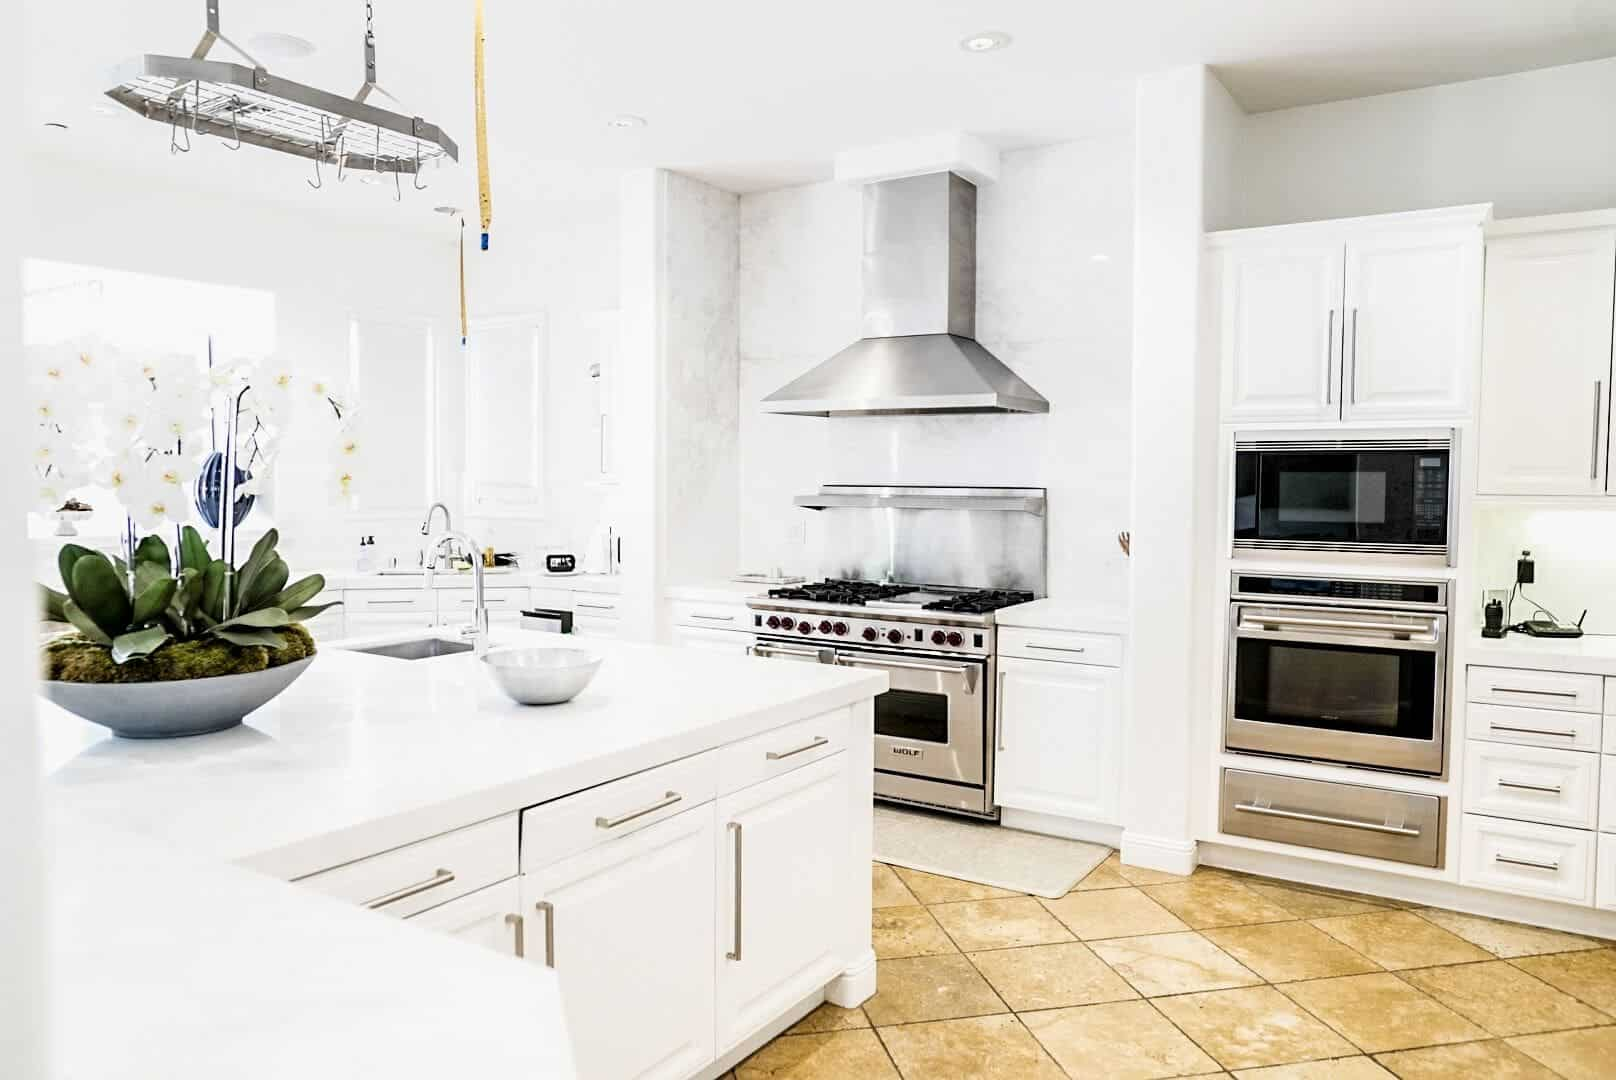 Another look at the kitchen, showcasing the brightness of the walls and kitchen counters, along with the beige tiles flooring. Images courtesy of Toptenrealestatedeals.com.